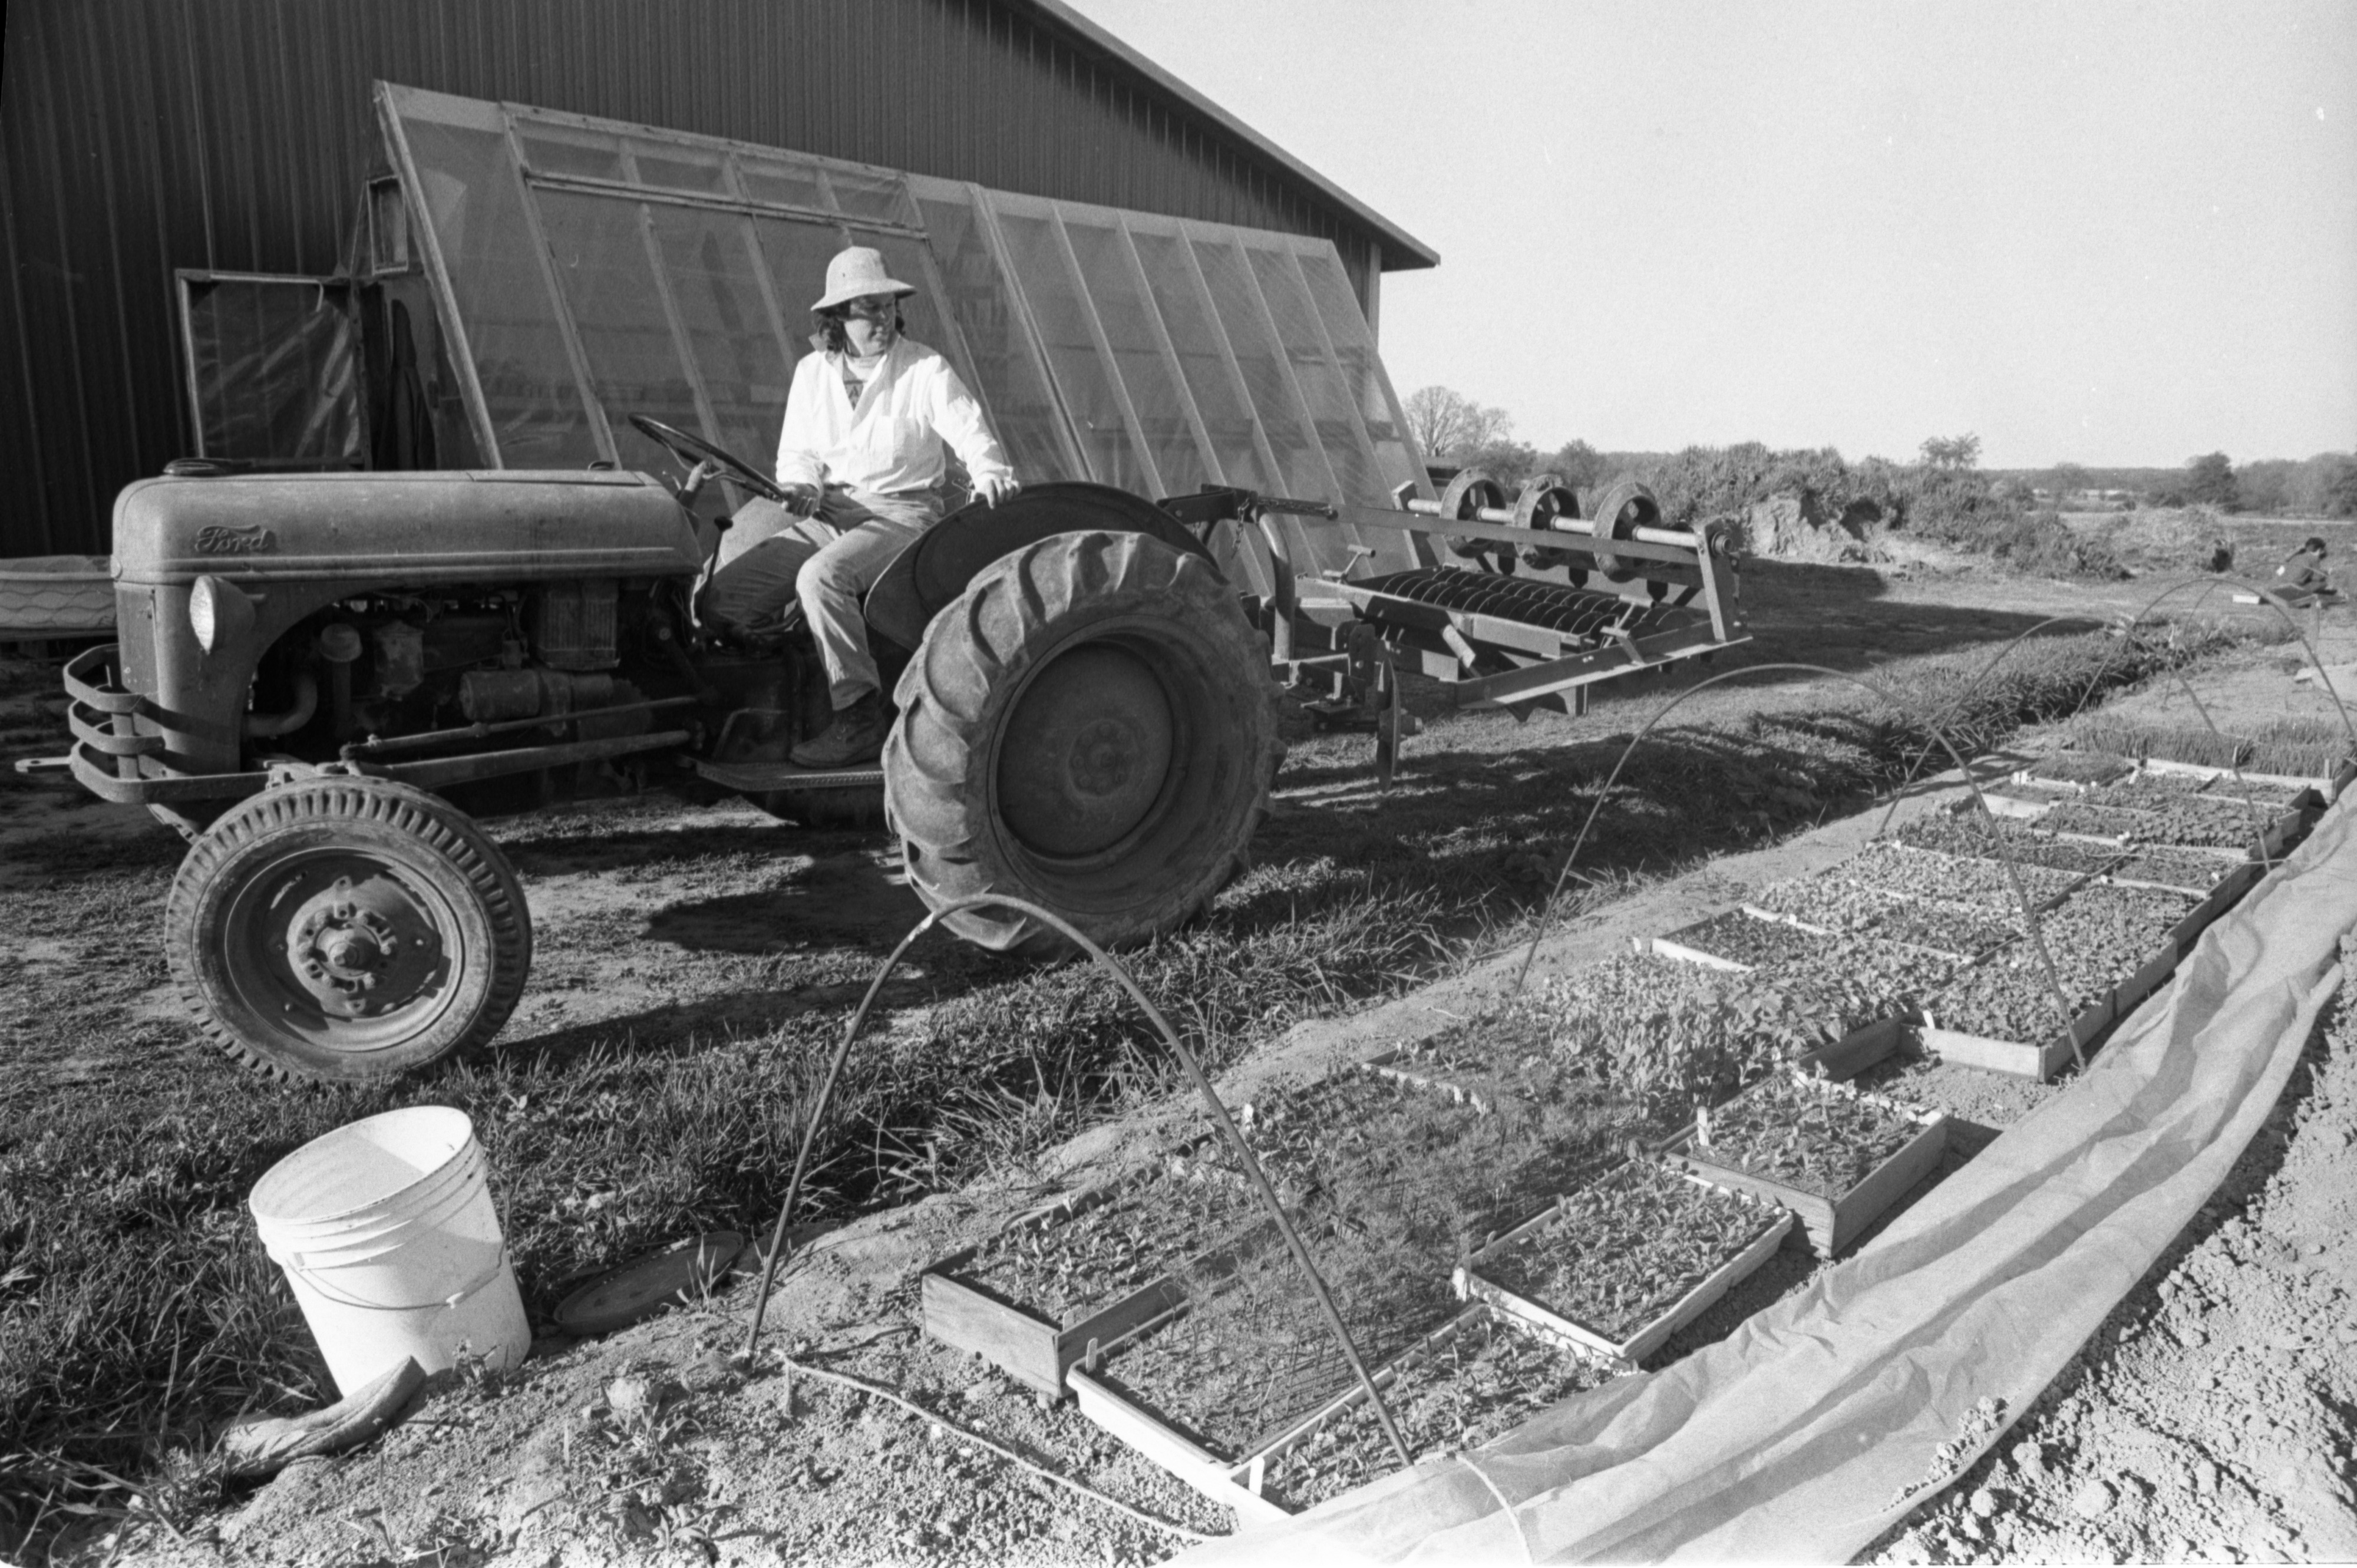 Marcia Barton Drives The Tractor By The Hoop Gardens At Community Farm, May 1988 image